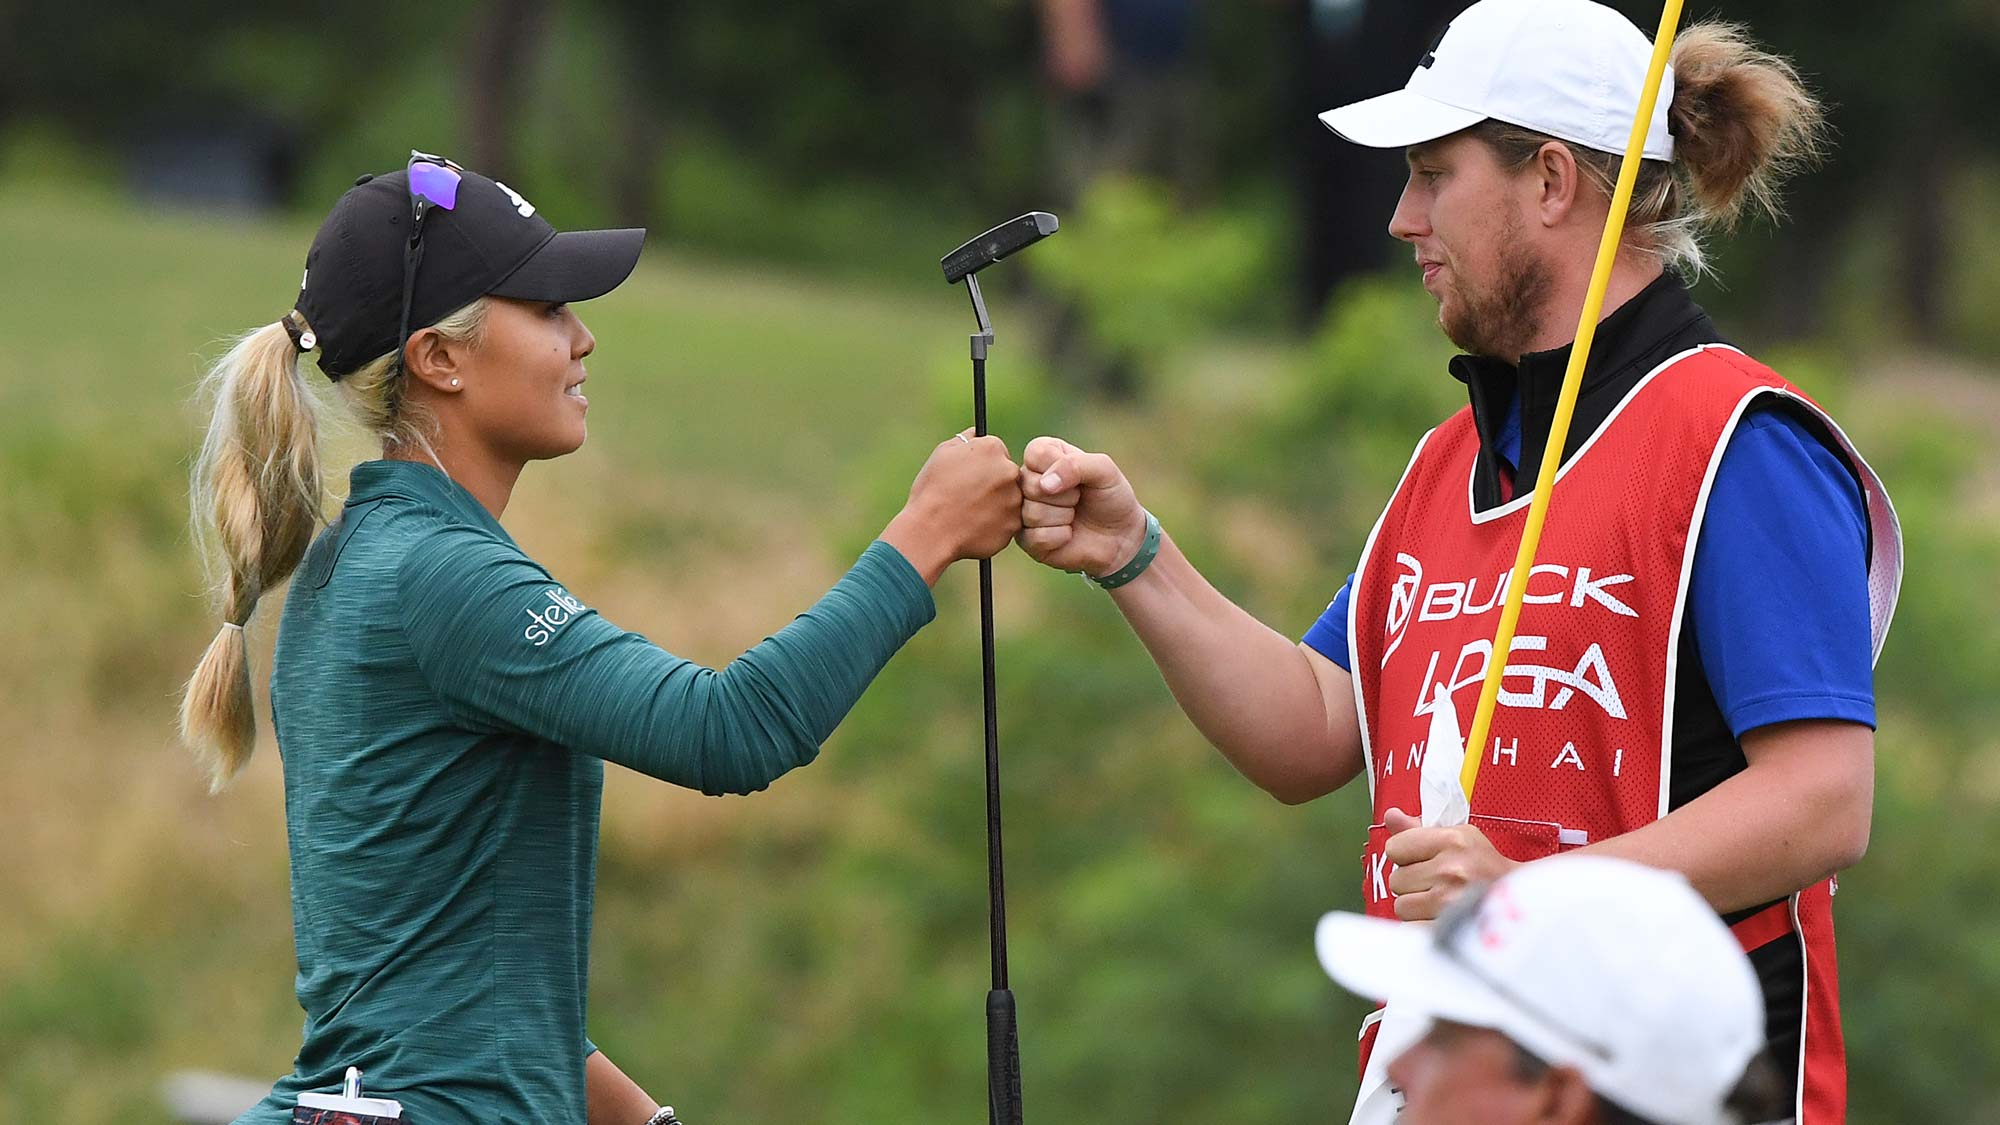 Danielle Kang of the United States plays a shot the final round of the Buick LPGA Shanghai